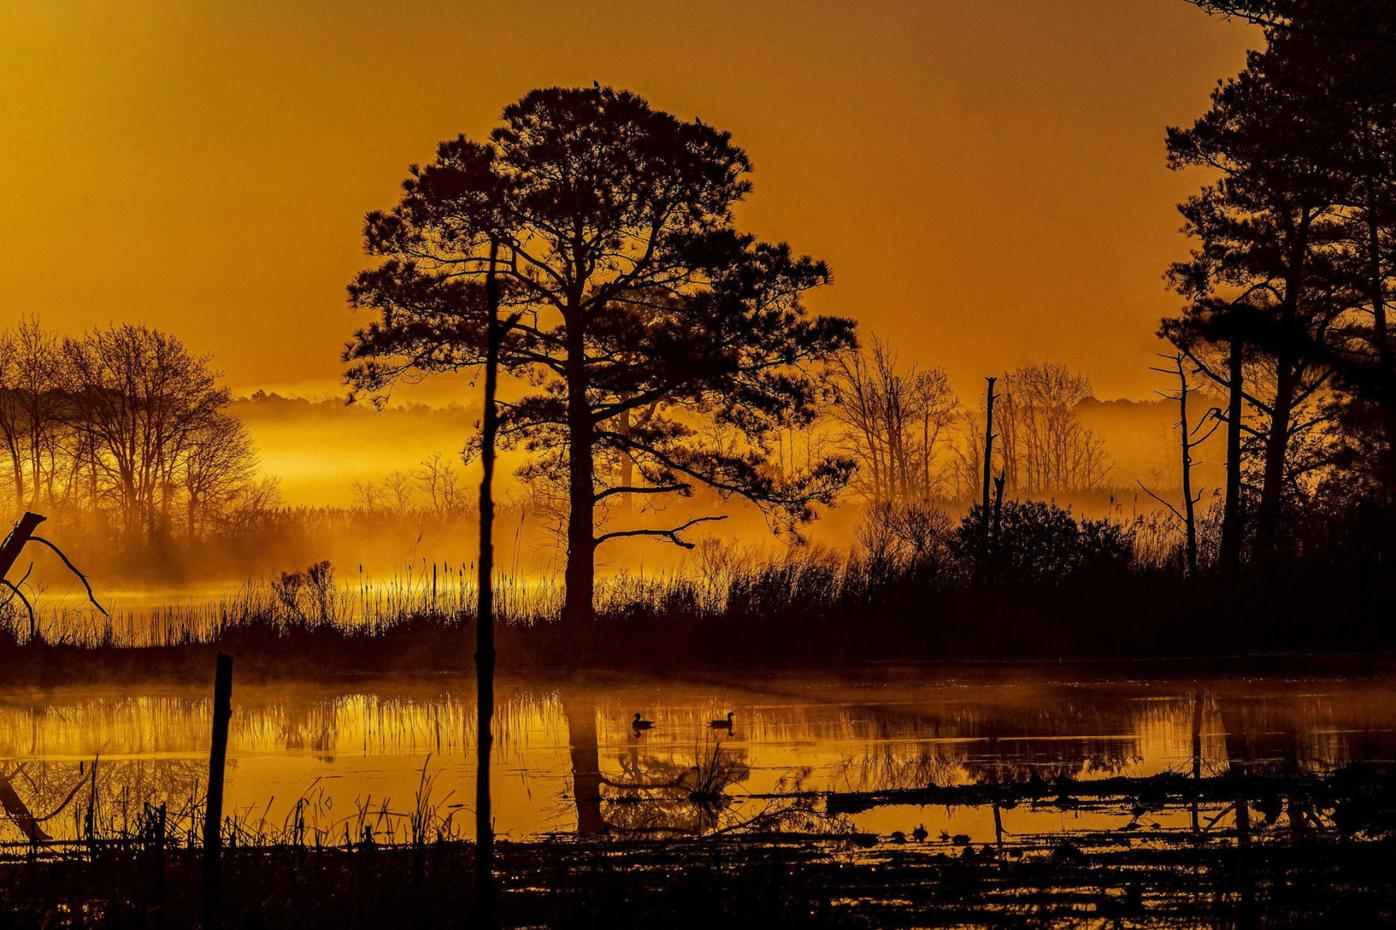 Blackwater photo takes first place in fall category